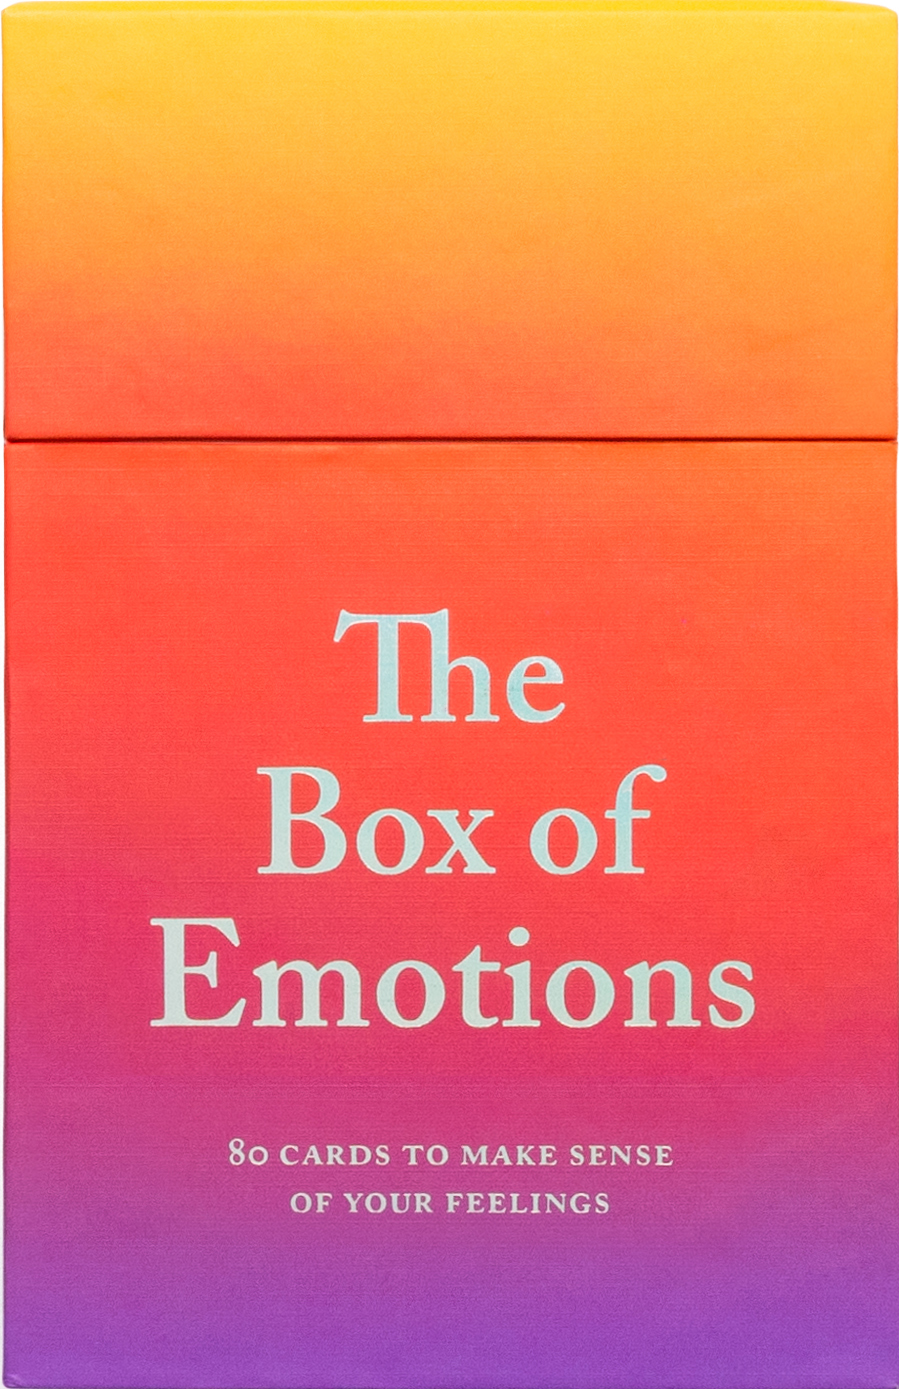 The Box of Emotions - Product Thumbnail